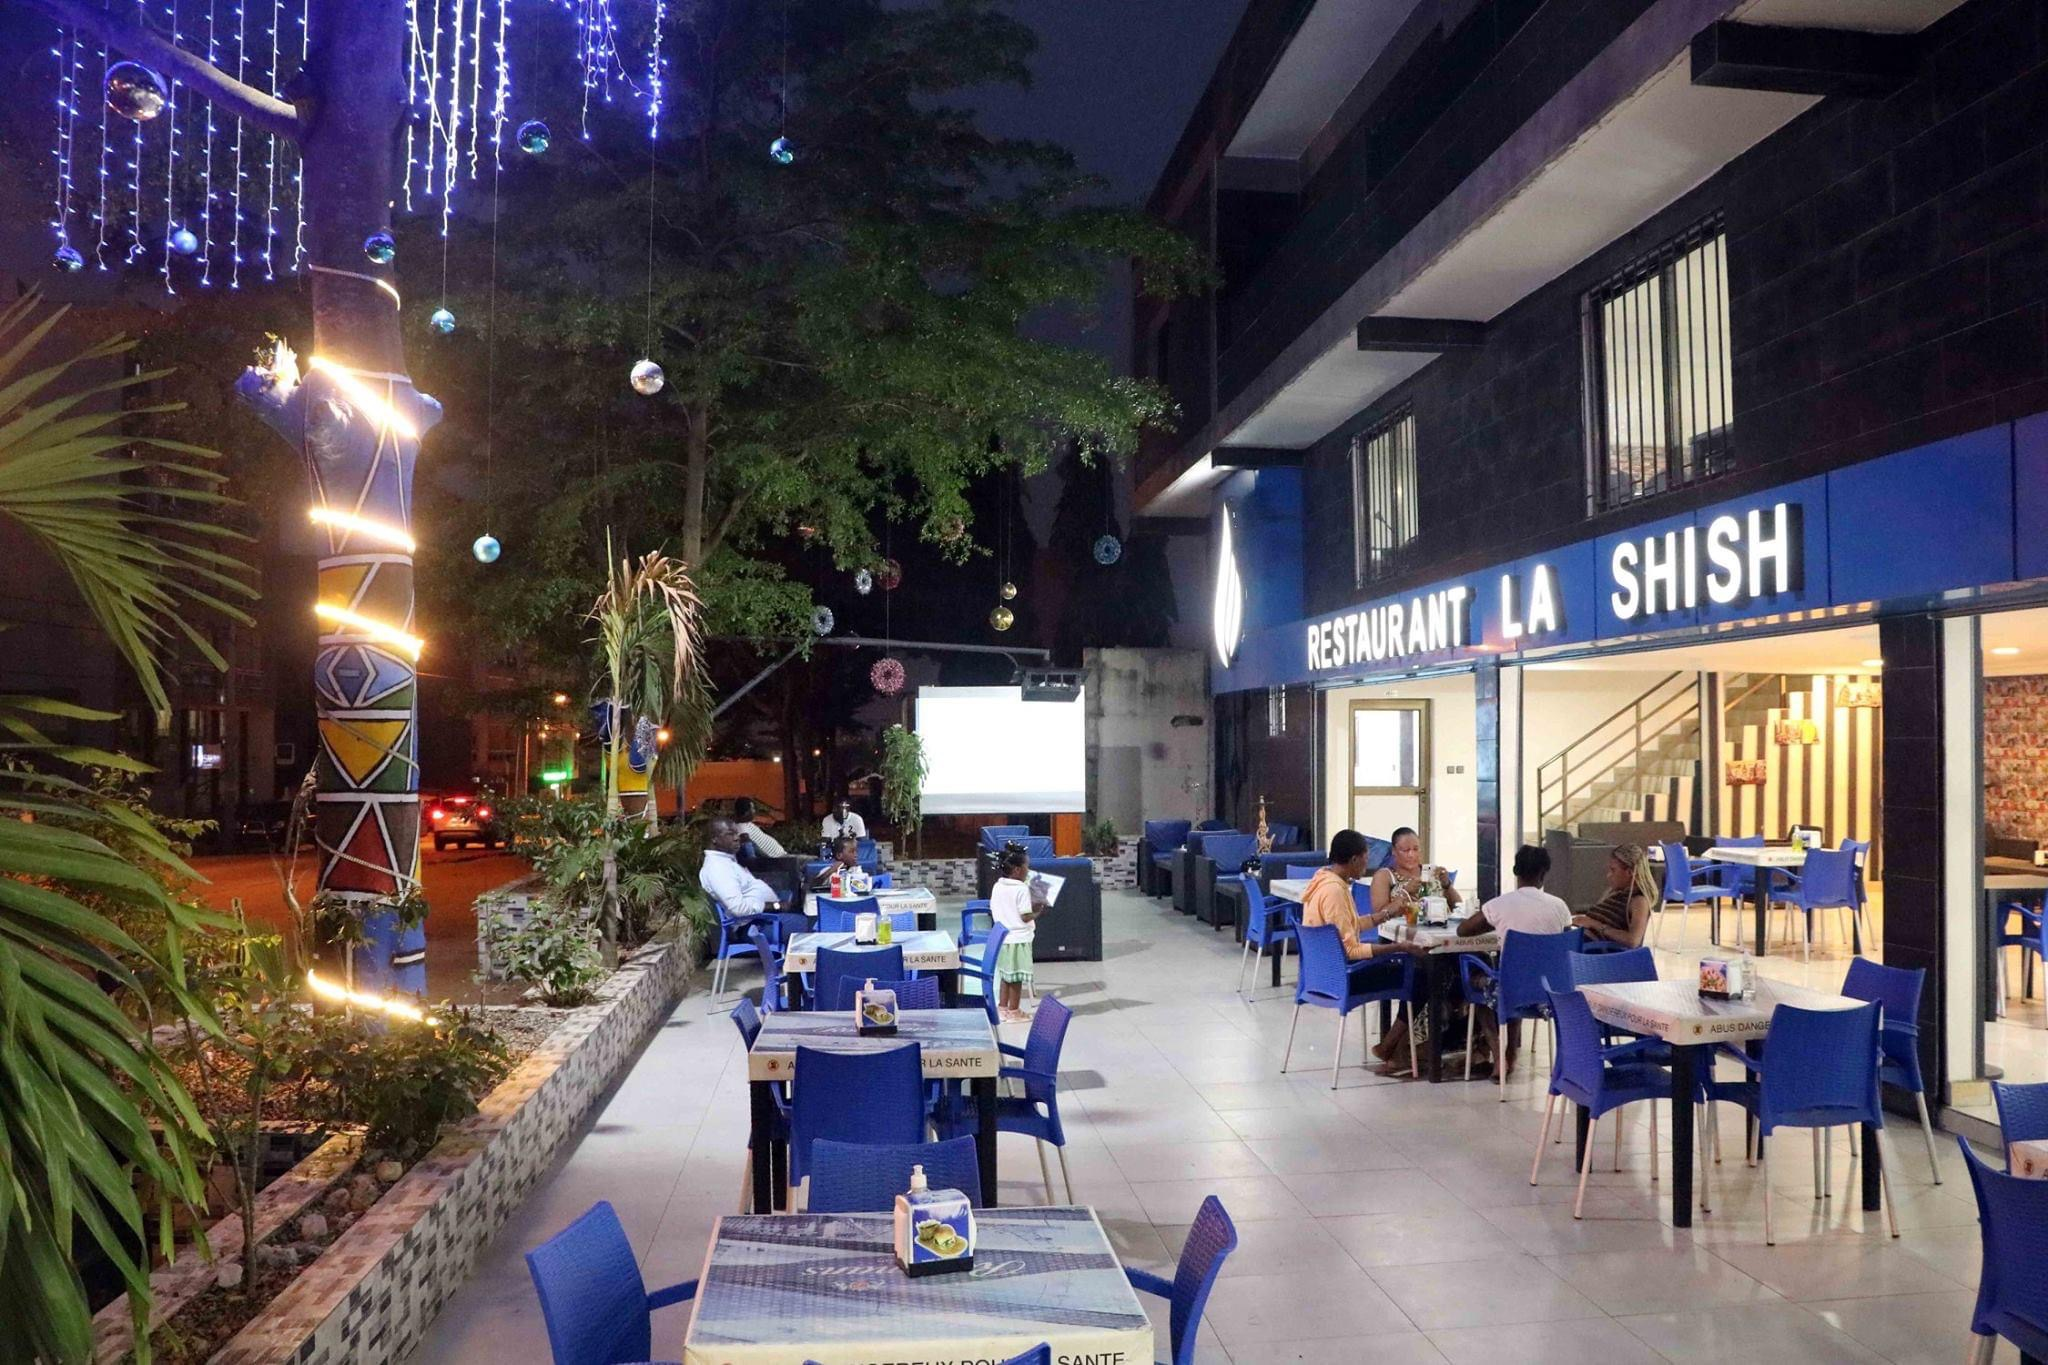 Restaurant La Shish